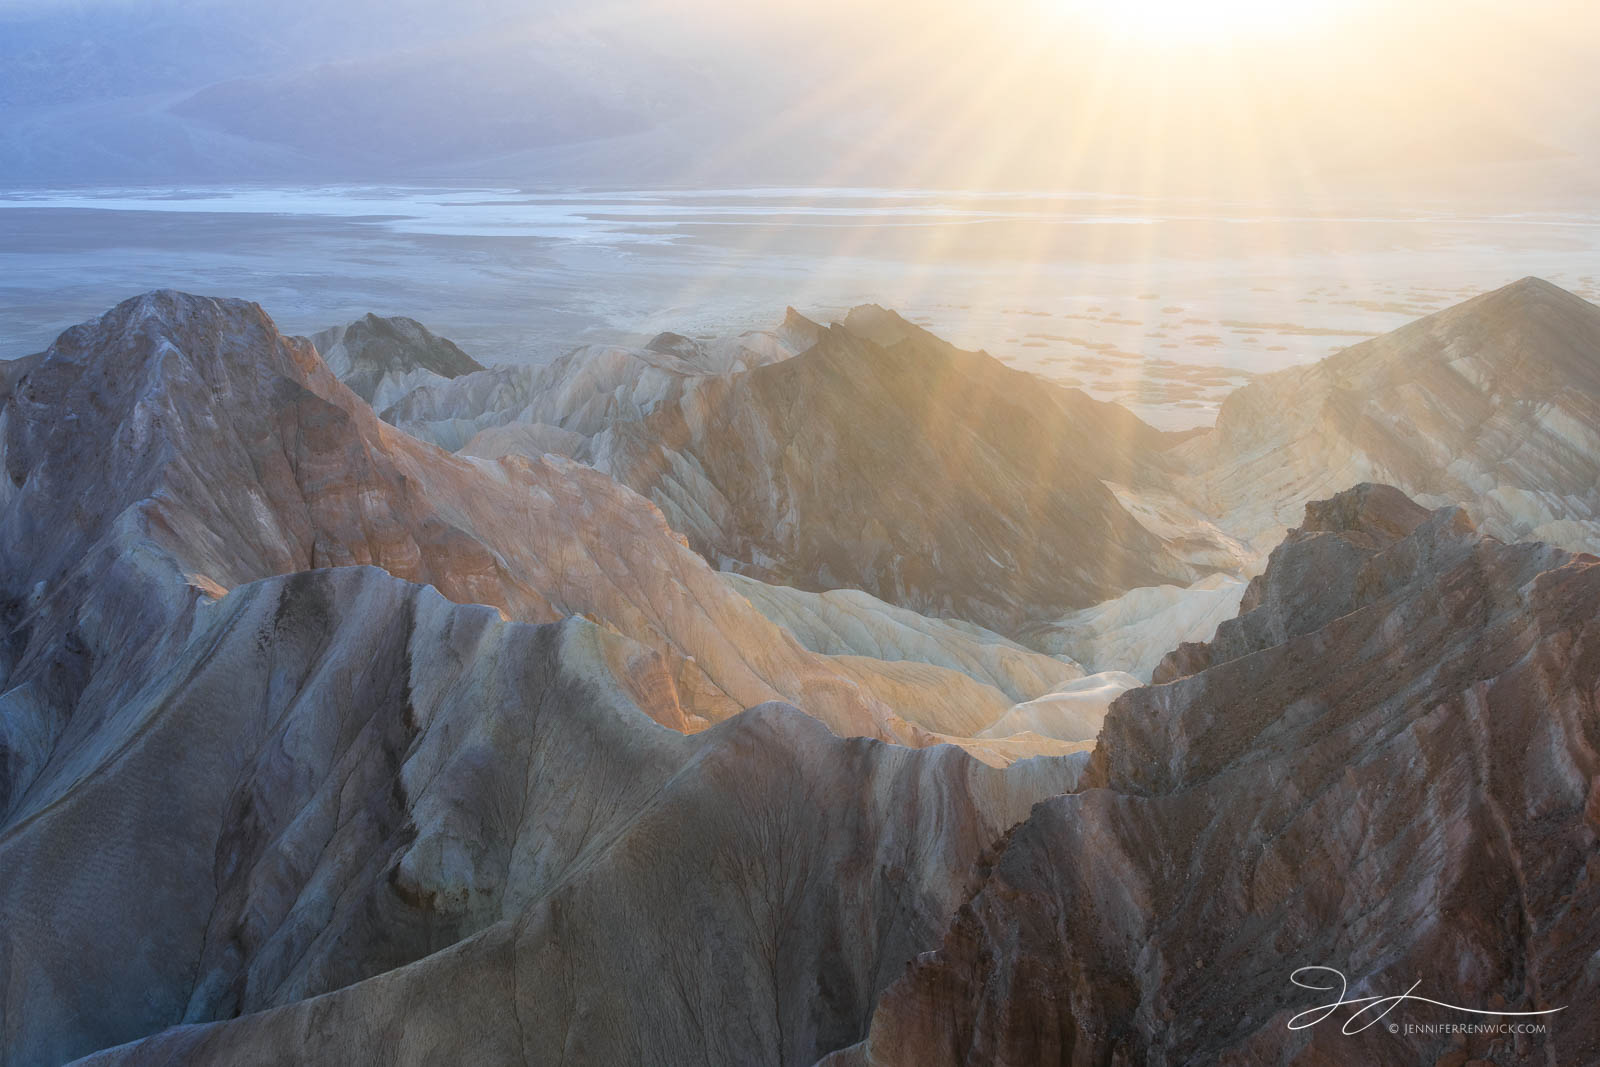 Death Valley National Park, Mojave Desert, Zabriskie Point, California, sunset, layers, backlit, badlands, landscape, ridges, photo